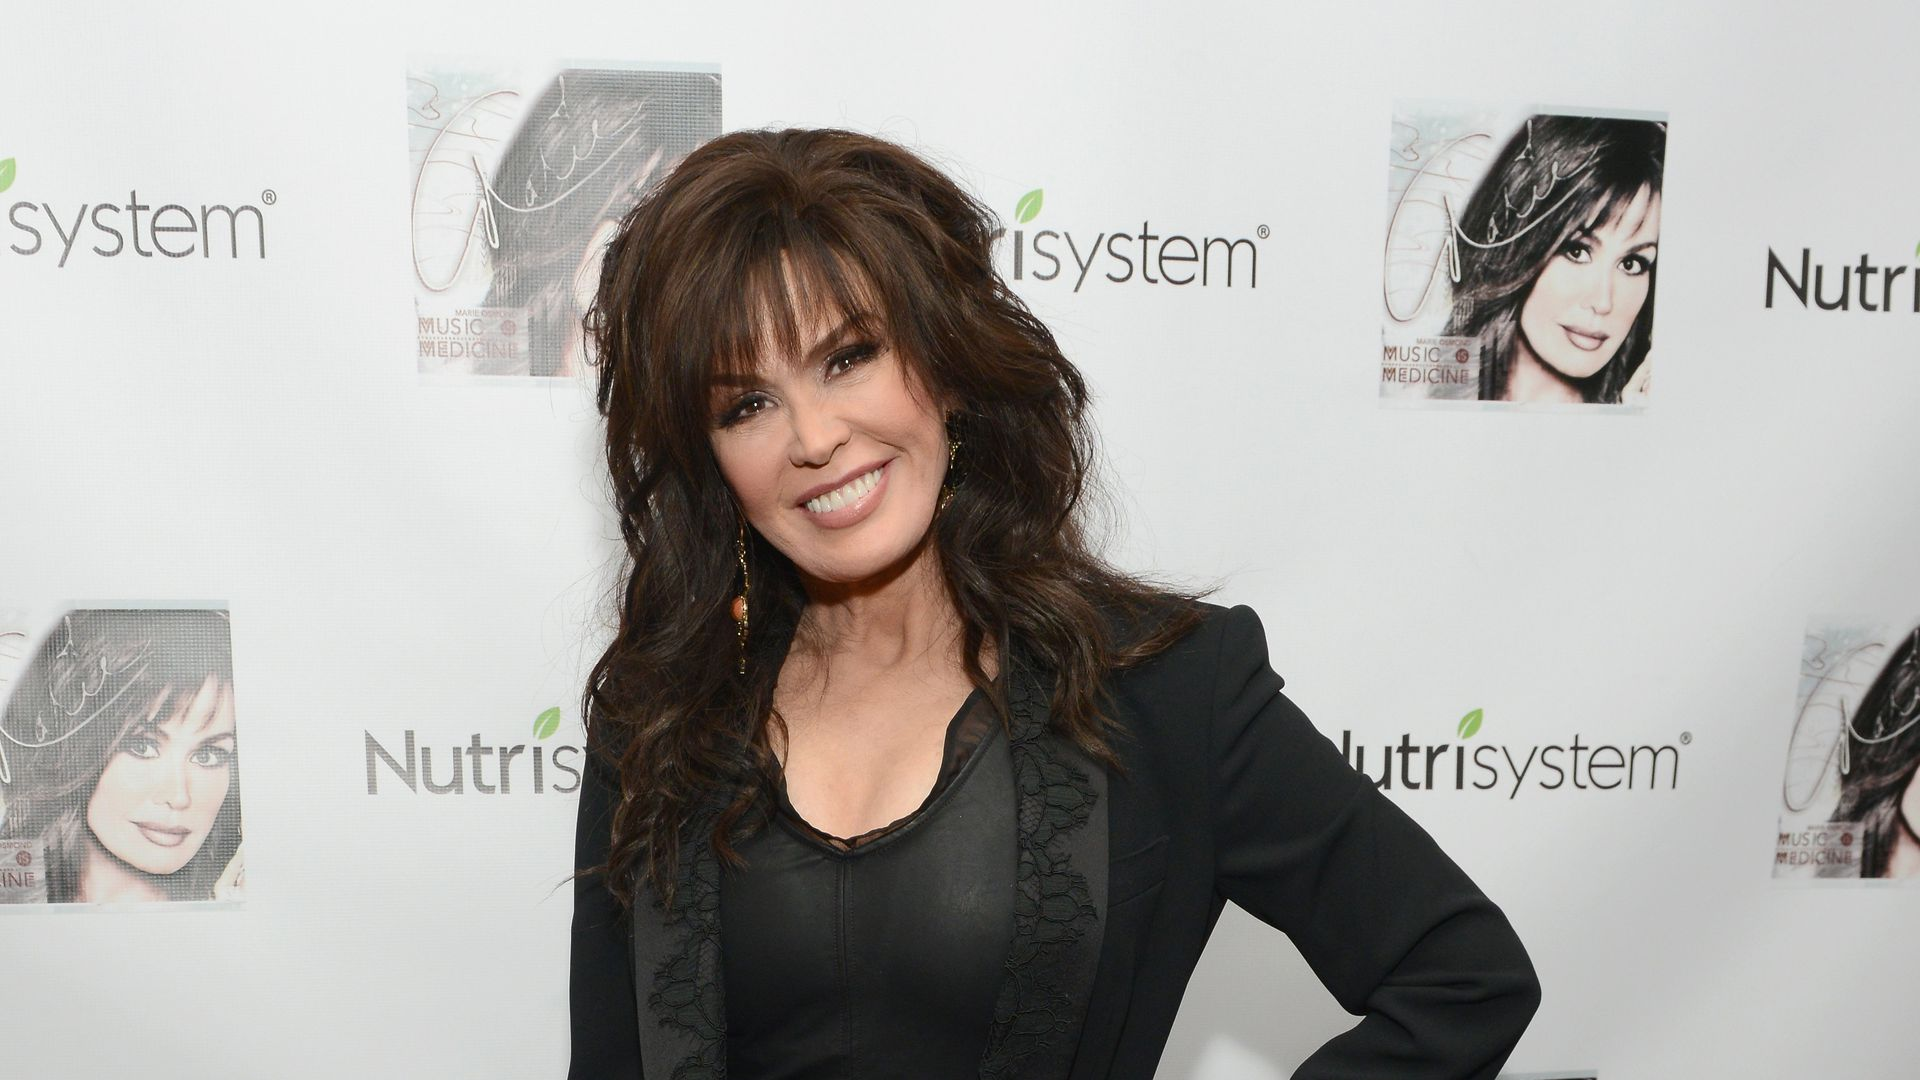 Marie Osmond poses for a photo with Nutrisystem logos in the background.